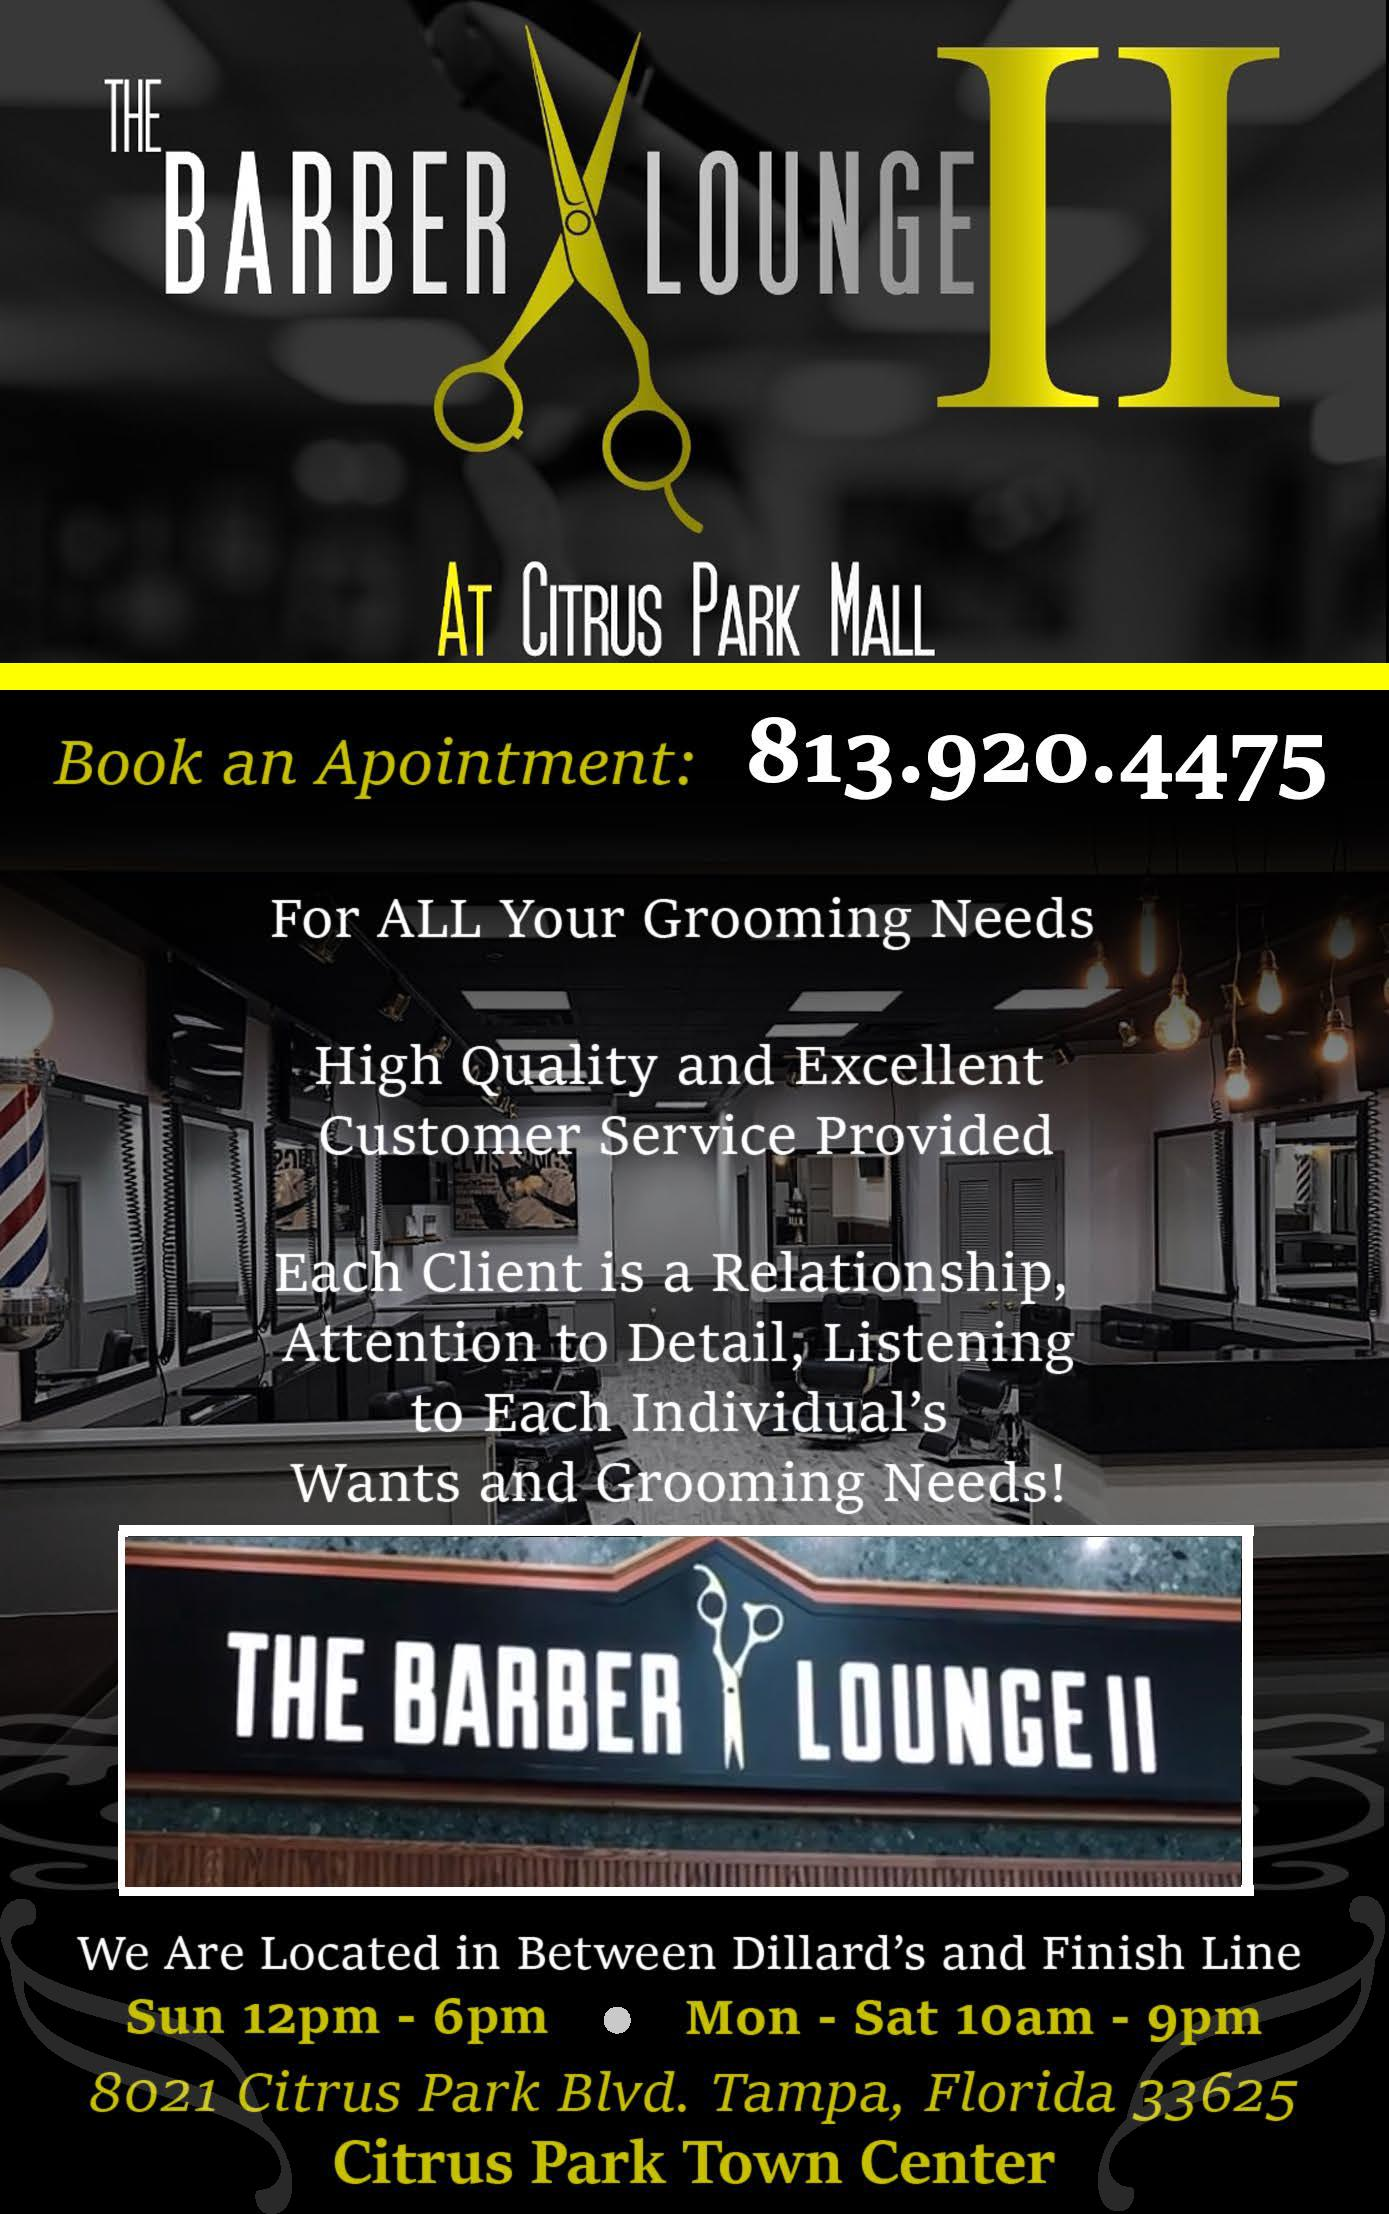 The Barber Lounge II